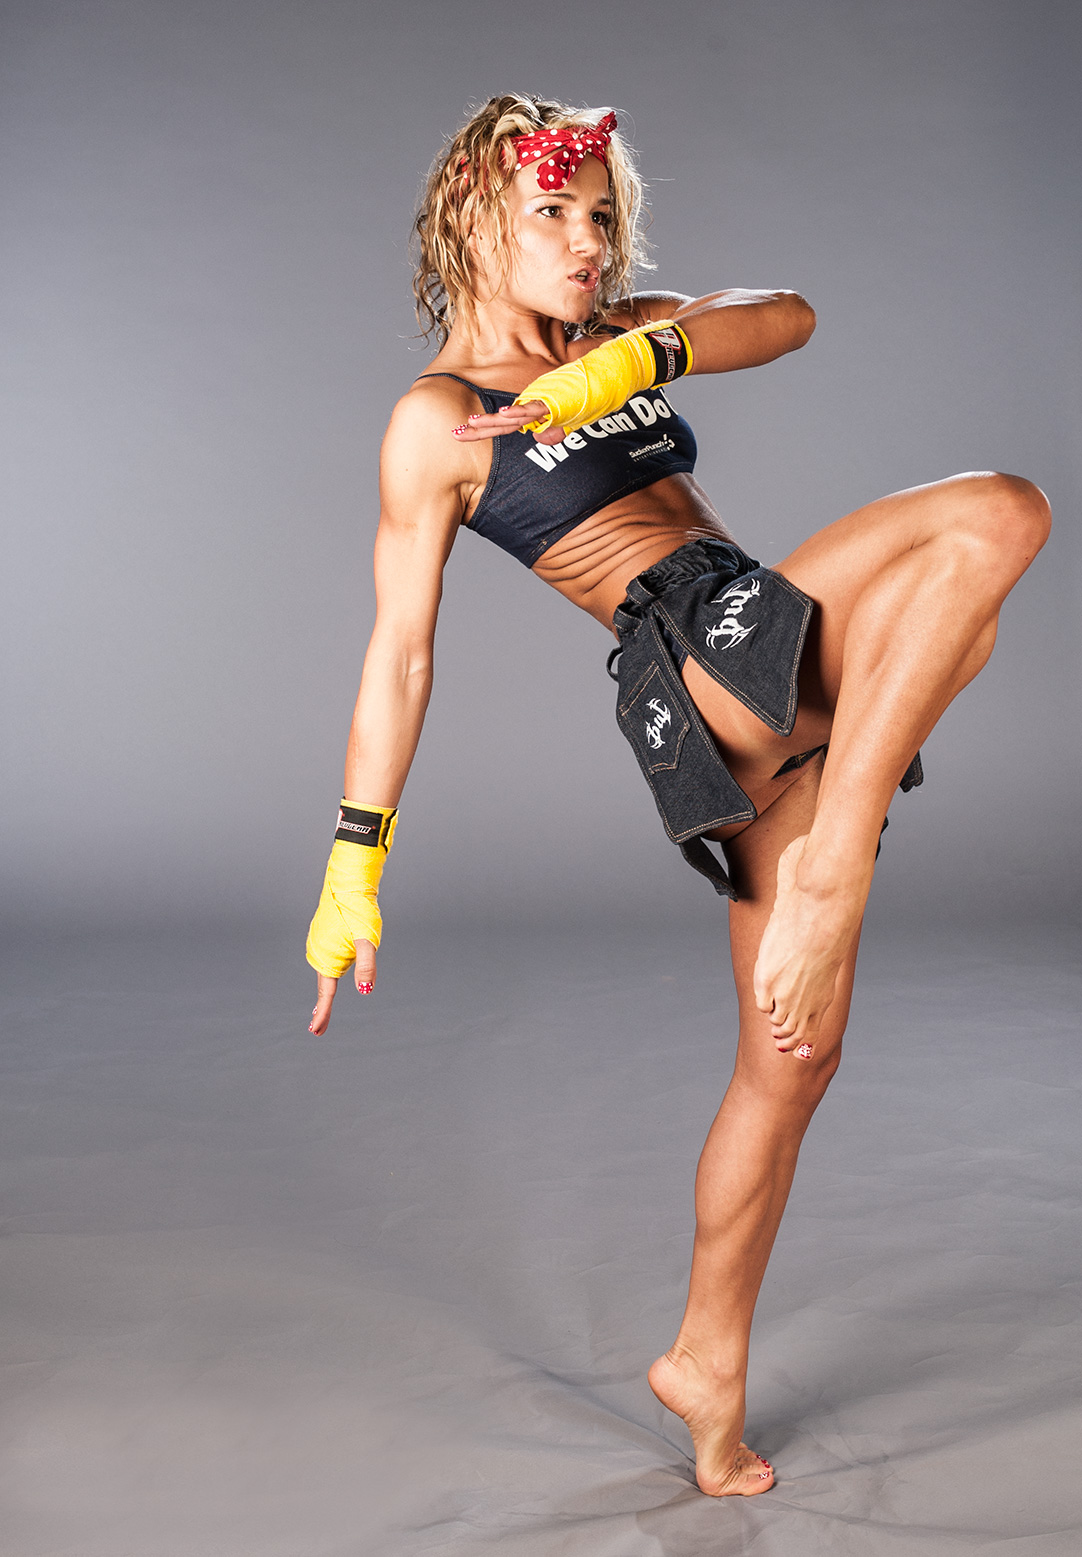 She is a fighter training her ass